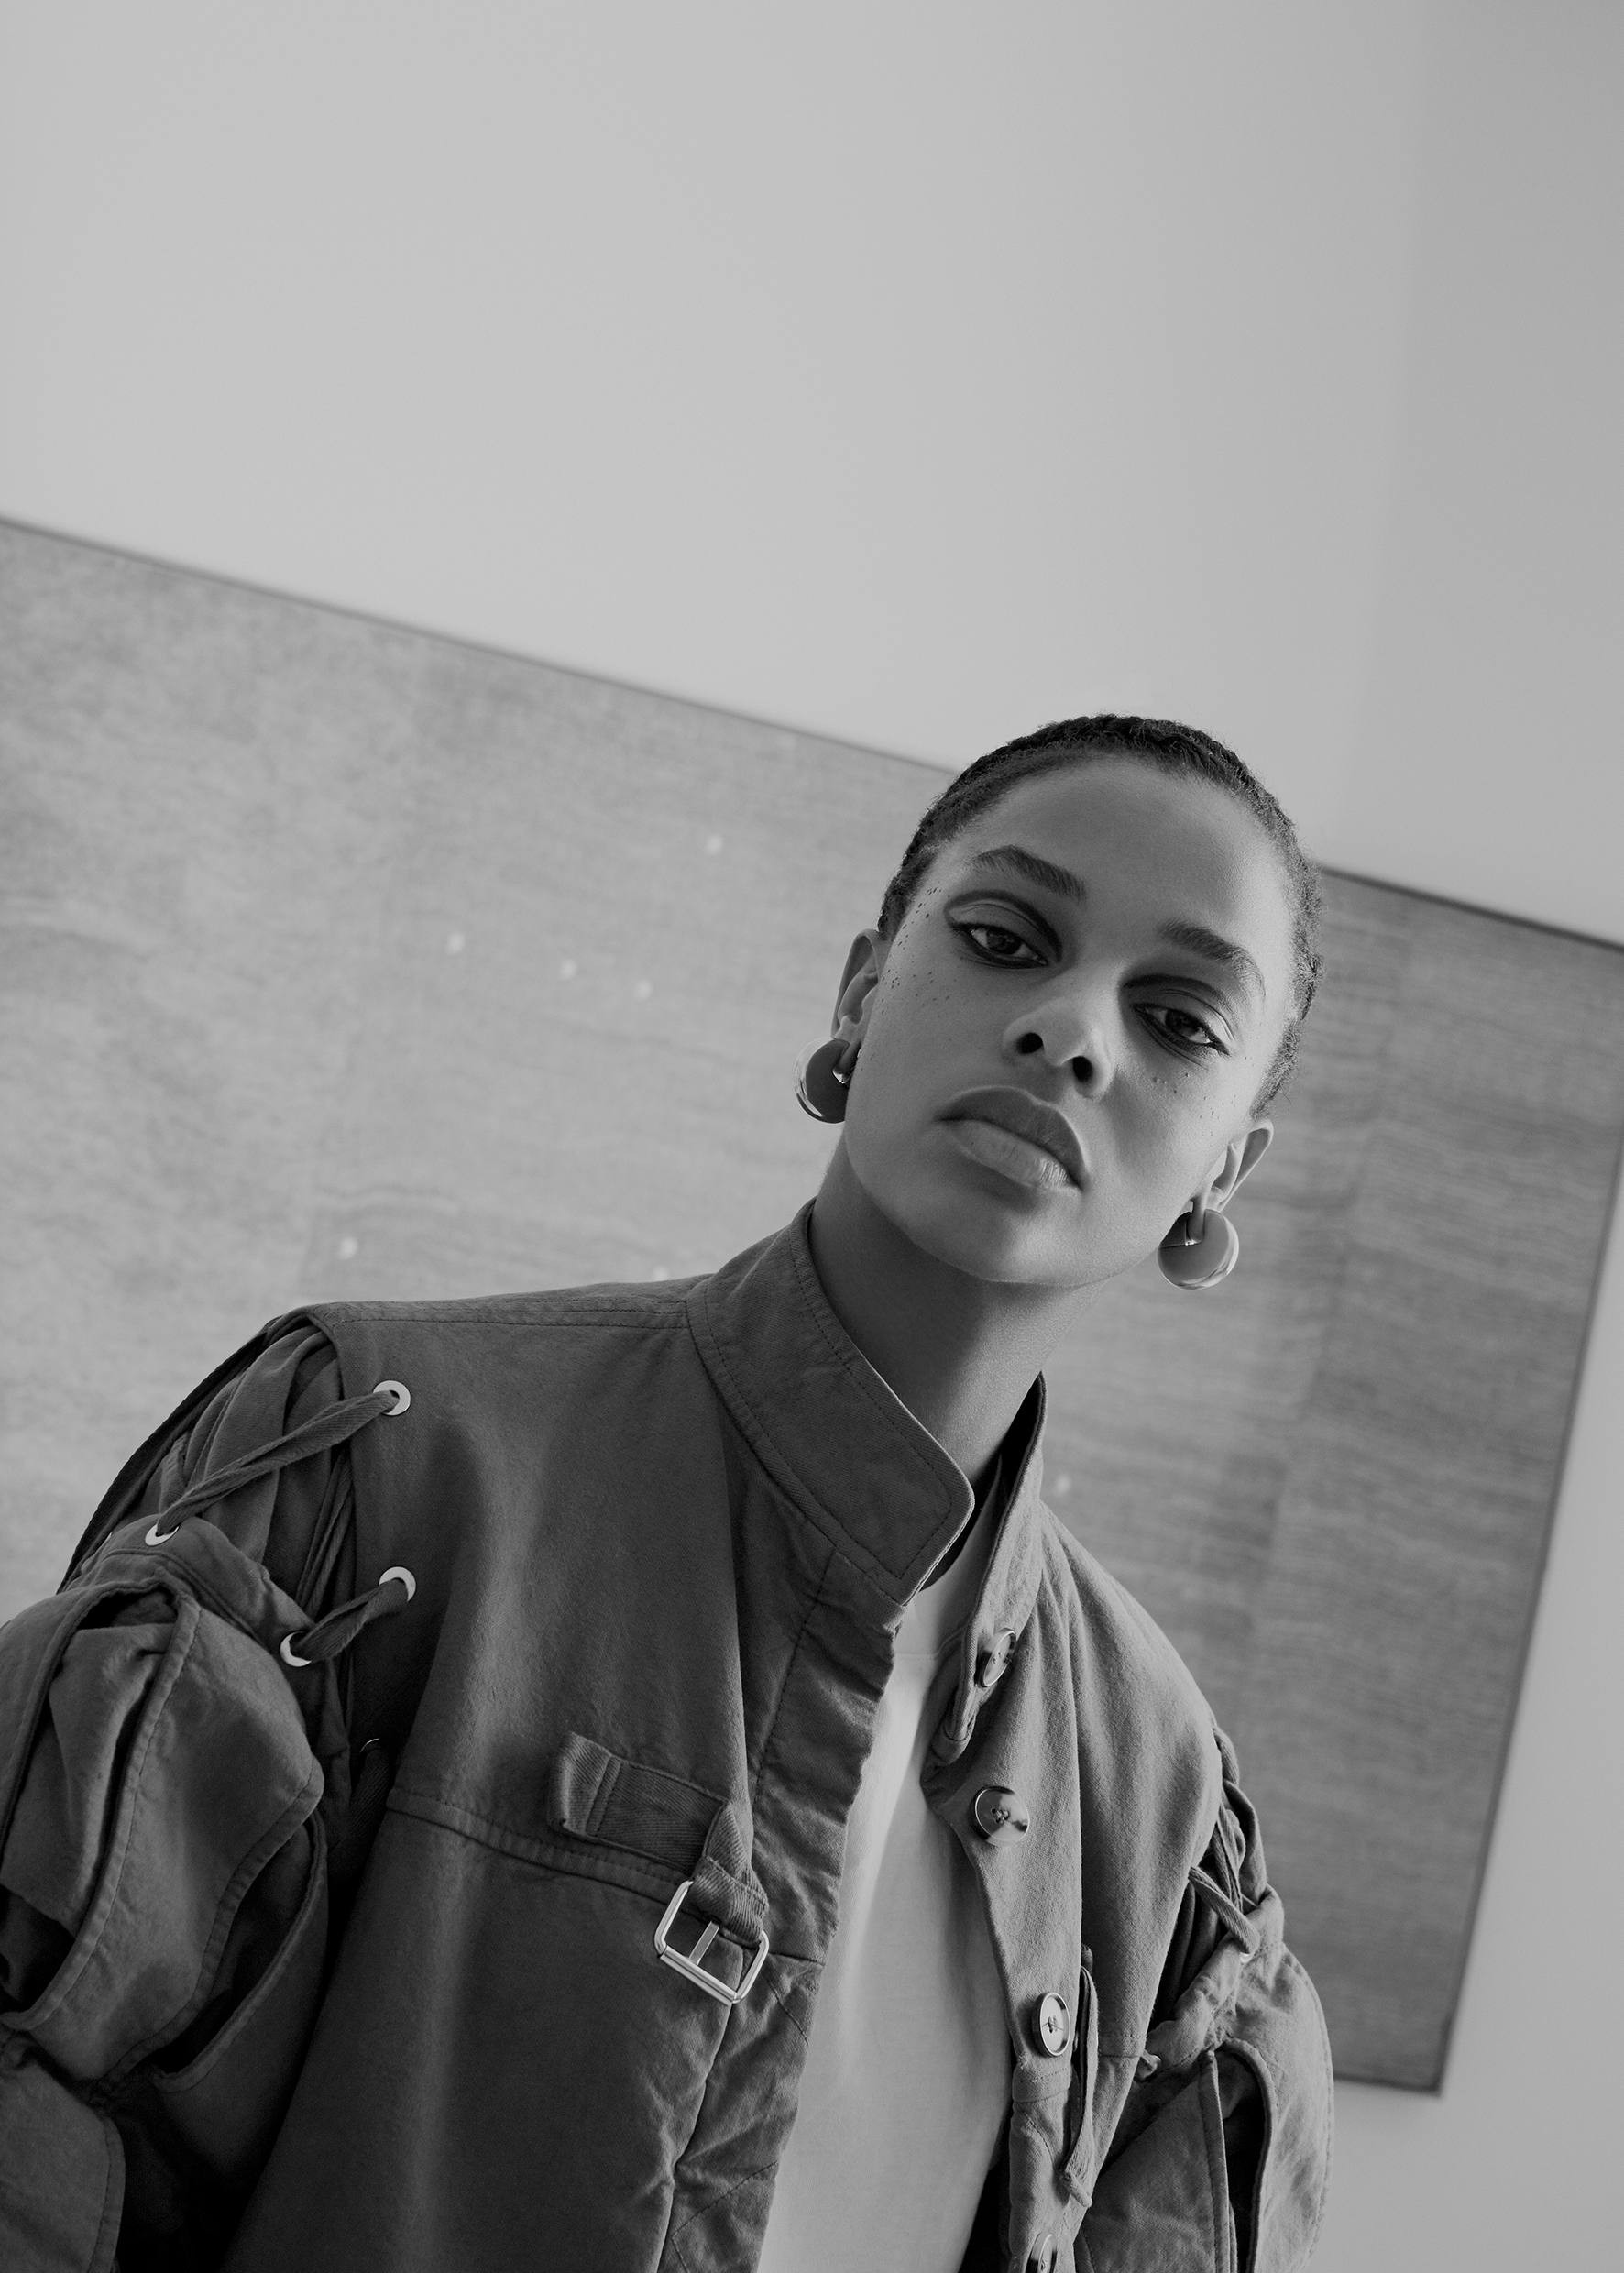 Buckled quilted jacket J.W. ANDERSON, white t-shirt DRIES VAN NOTEN, silver brass earrings CÉLINE.